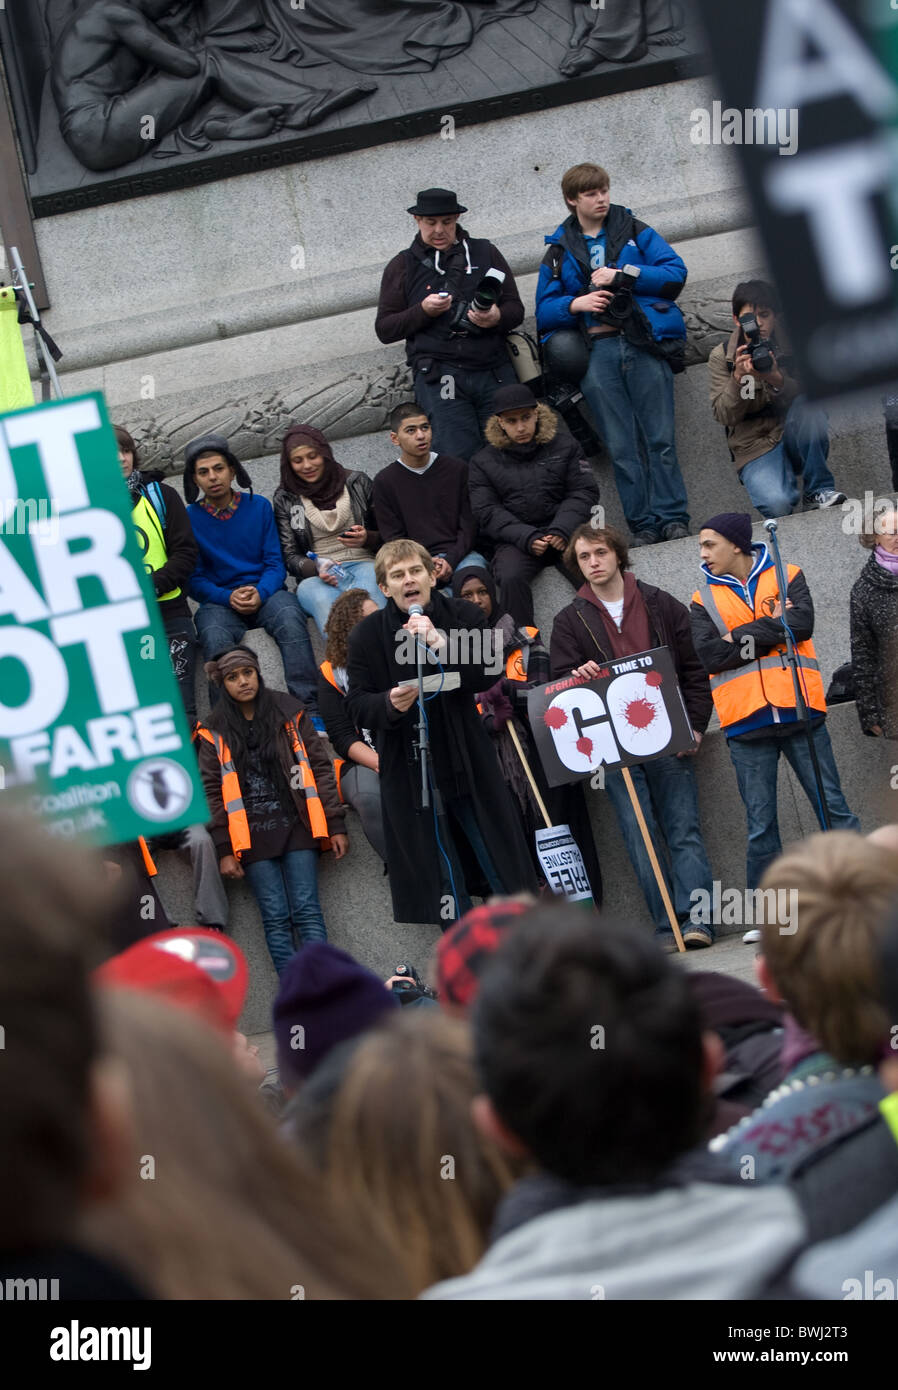 Seamus Milne voices his views at the Afghanistan Time To Go rally Trafalgar sq - Stock Image